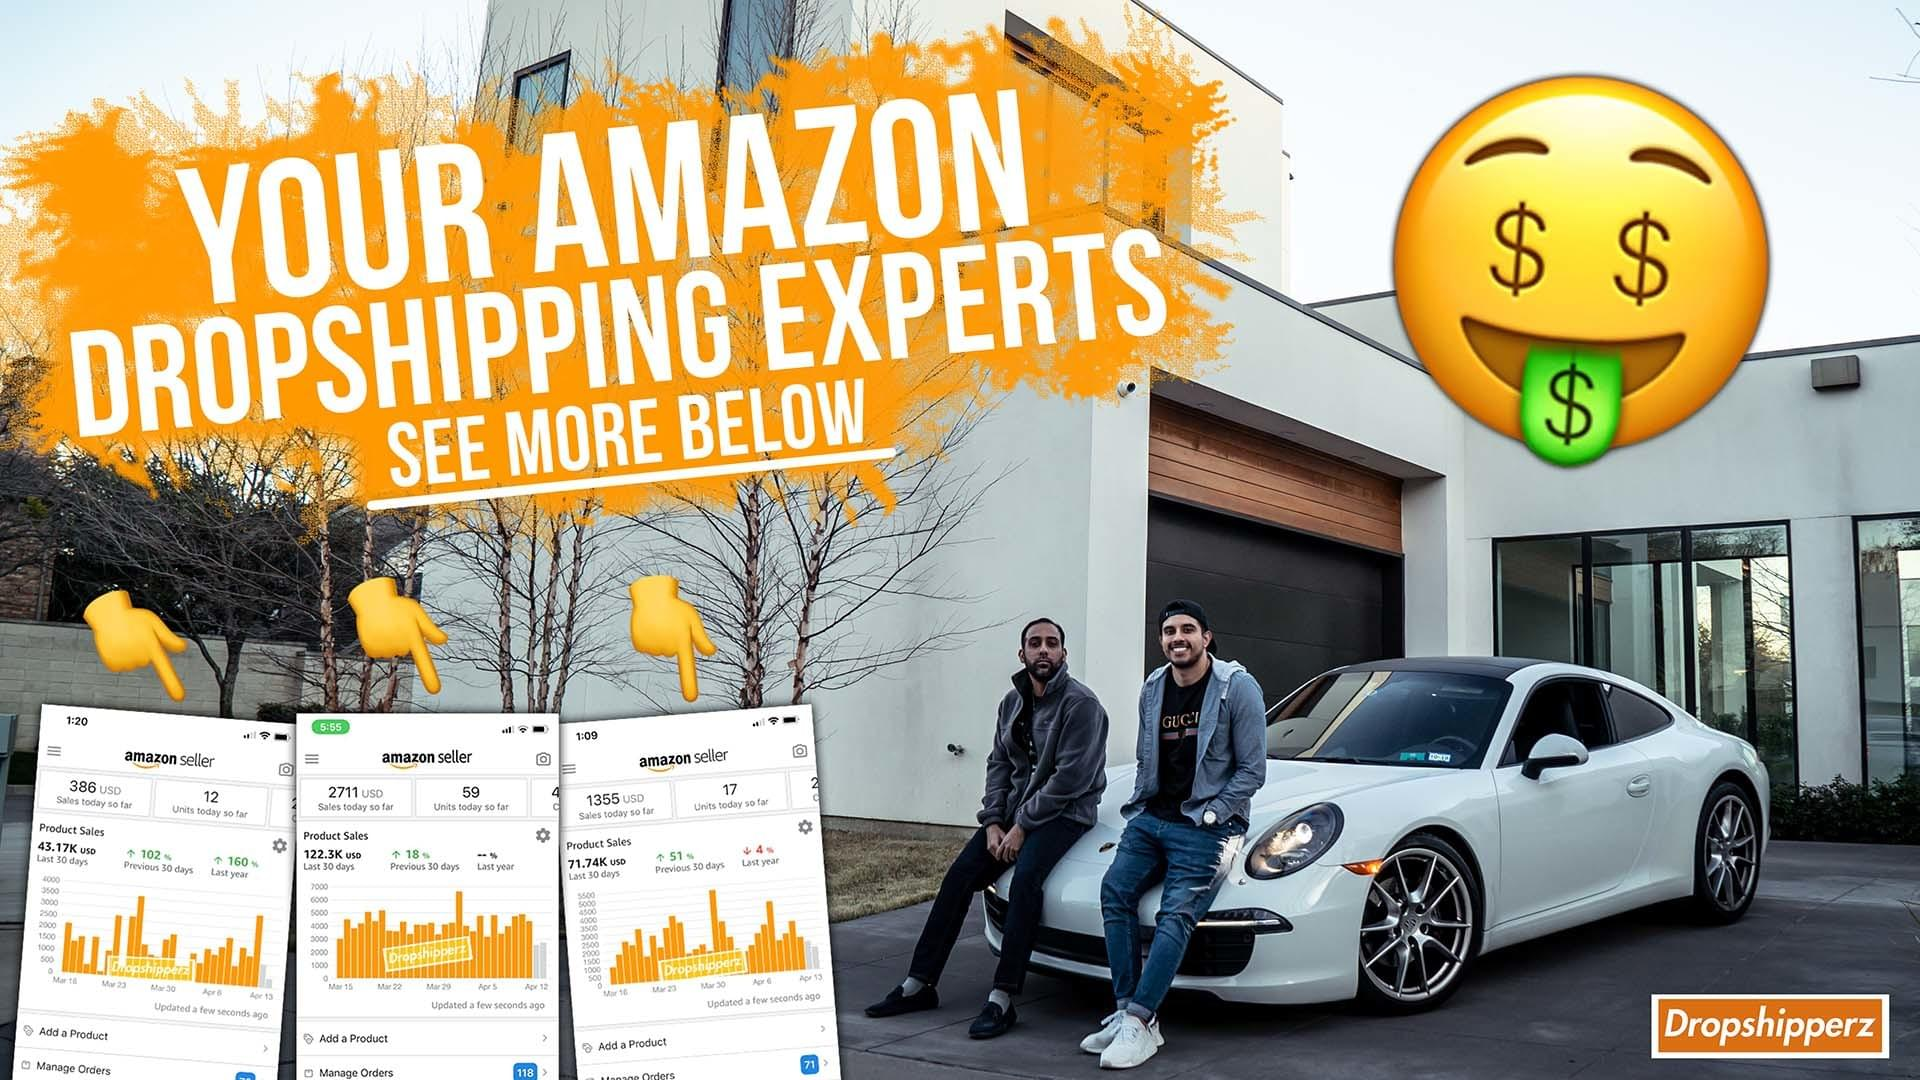 Amazon Dropshipping Course